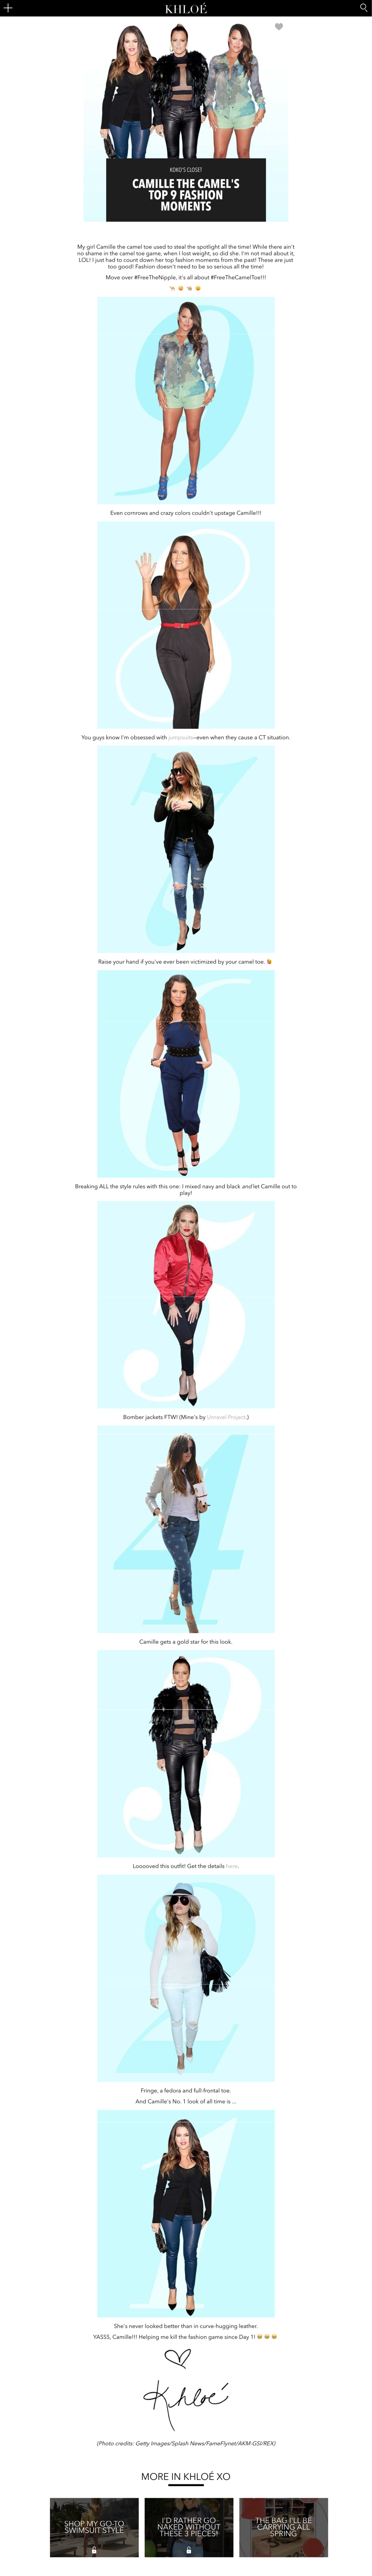 screencapture-khloewithak-xo-505-khloe-kardashian-camille-camels-top-fashion-moments-2018-06-01-13_50_02.png